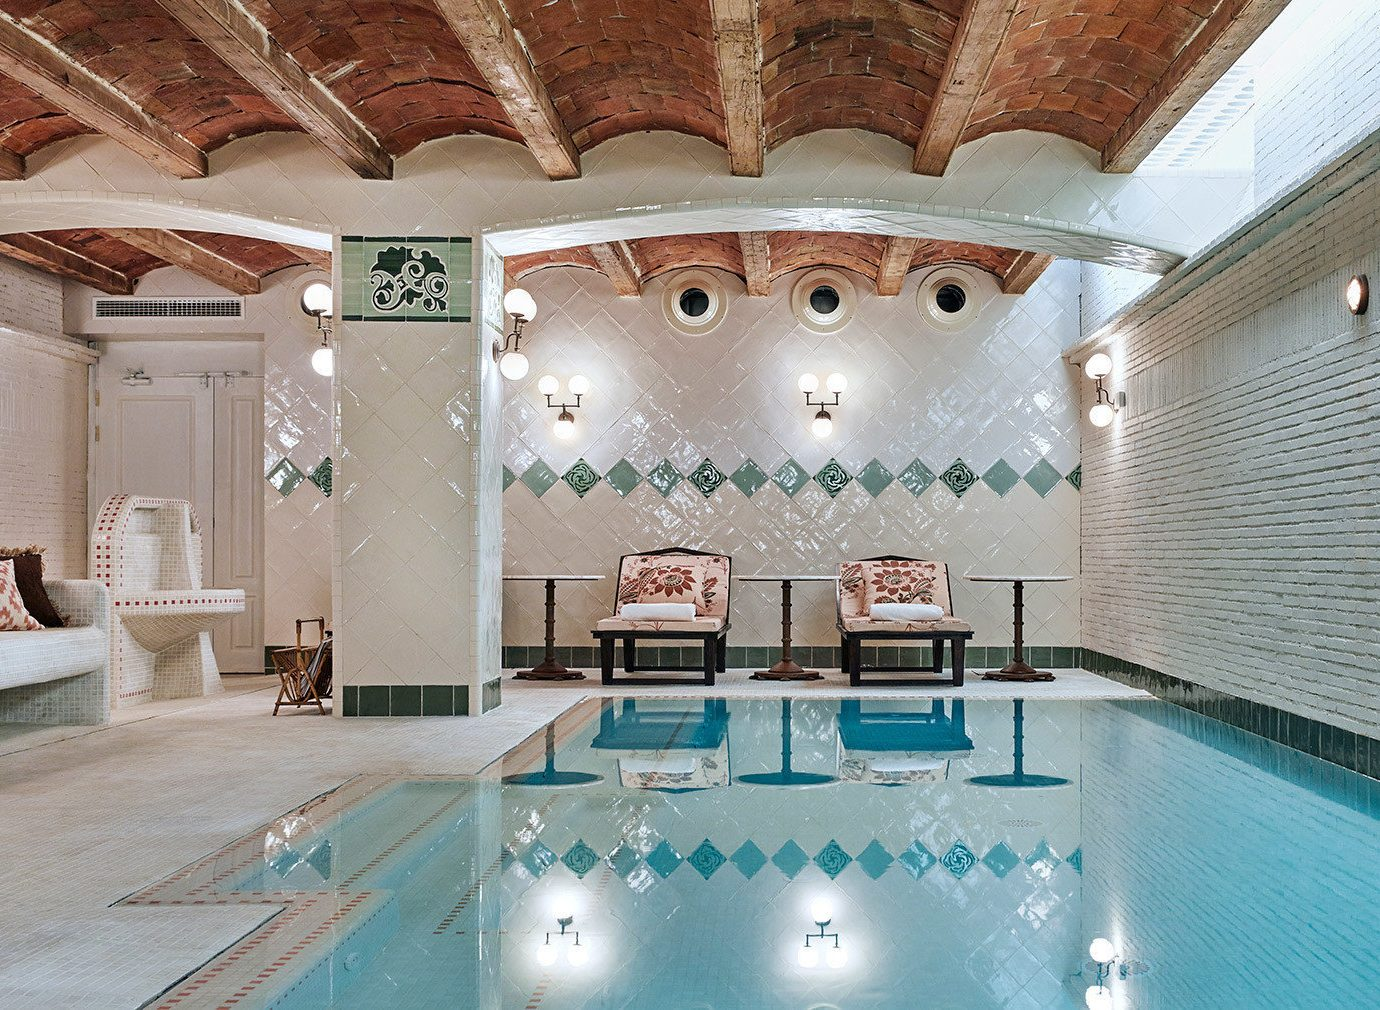 Barcelona Hotels Spain indoor swimming pool estate interior design function hall mansion Lobby Design ceiling